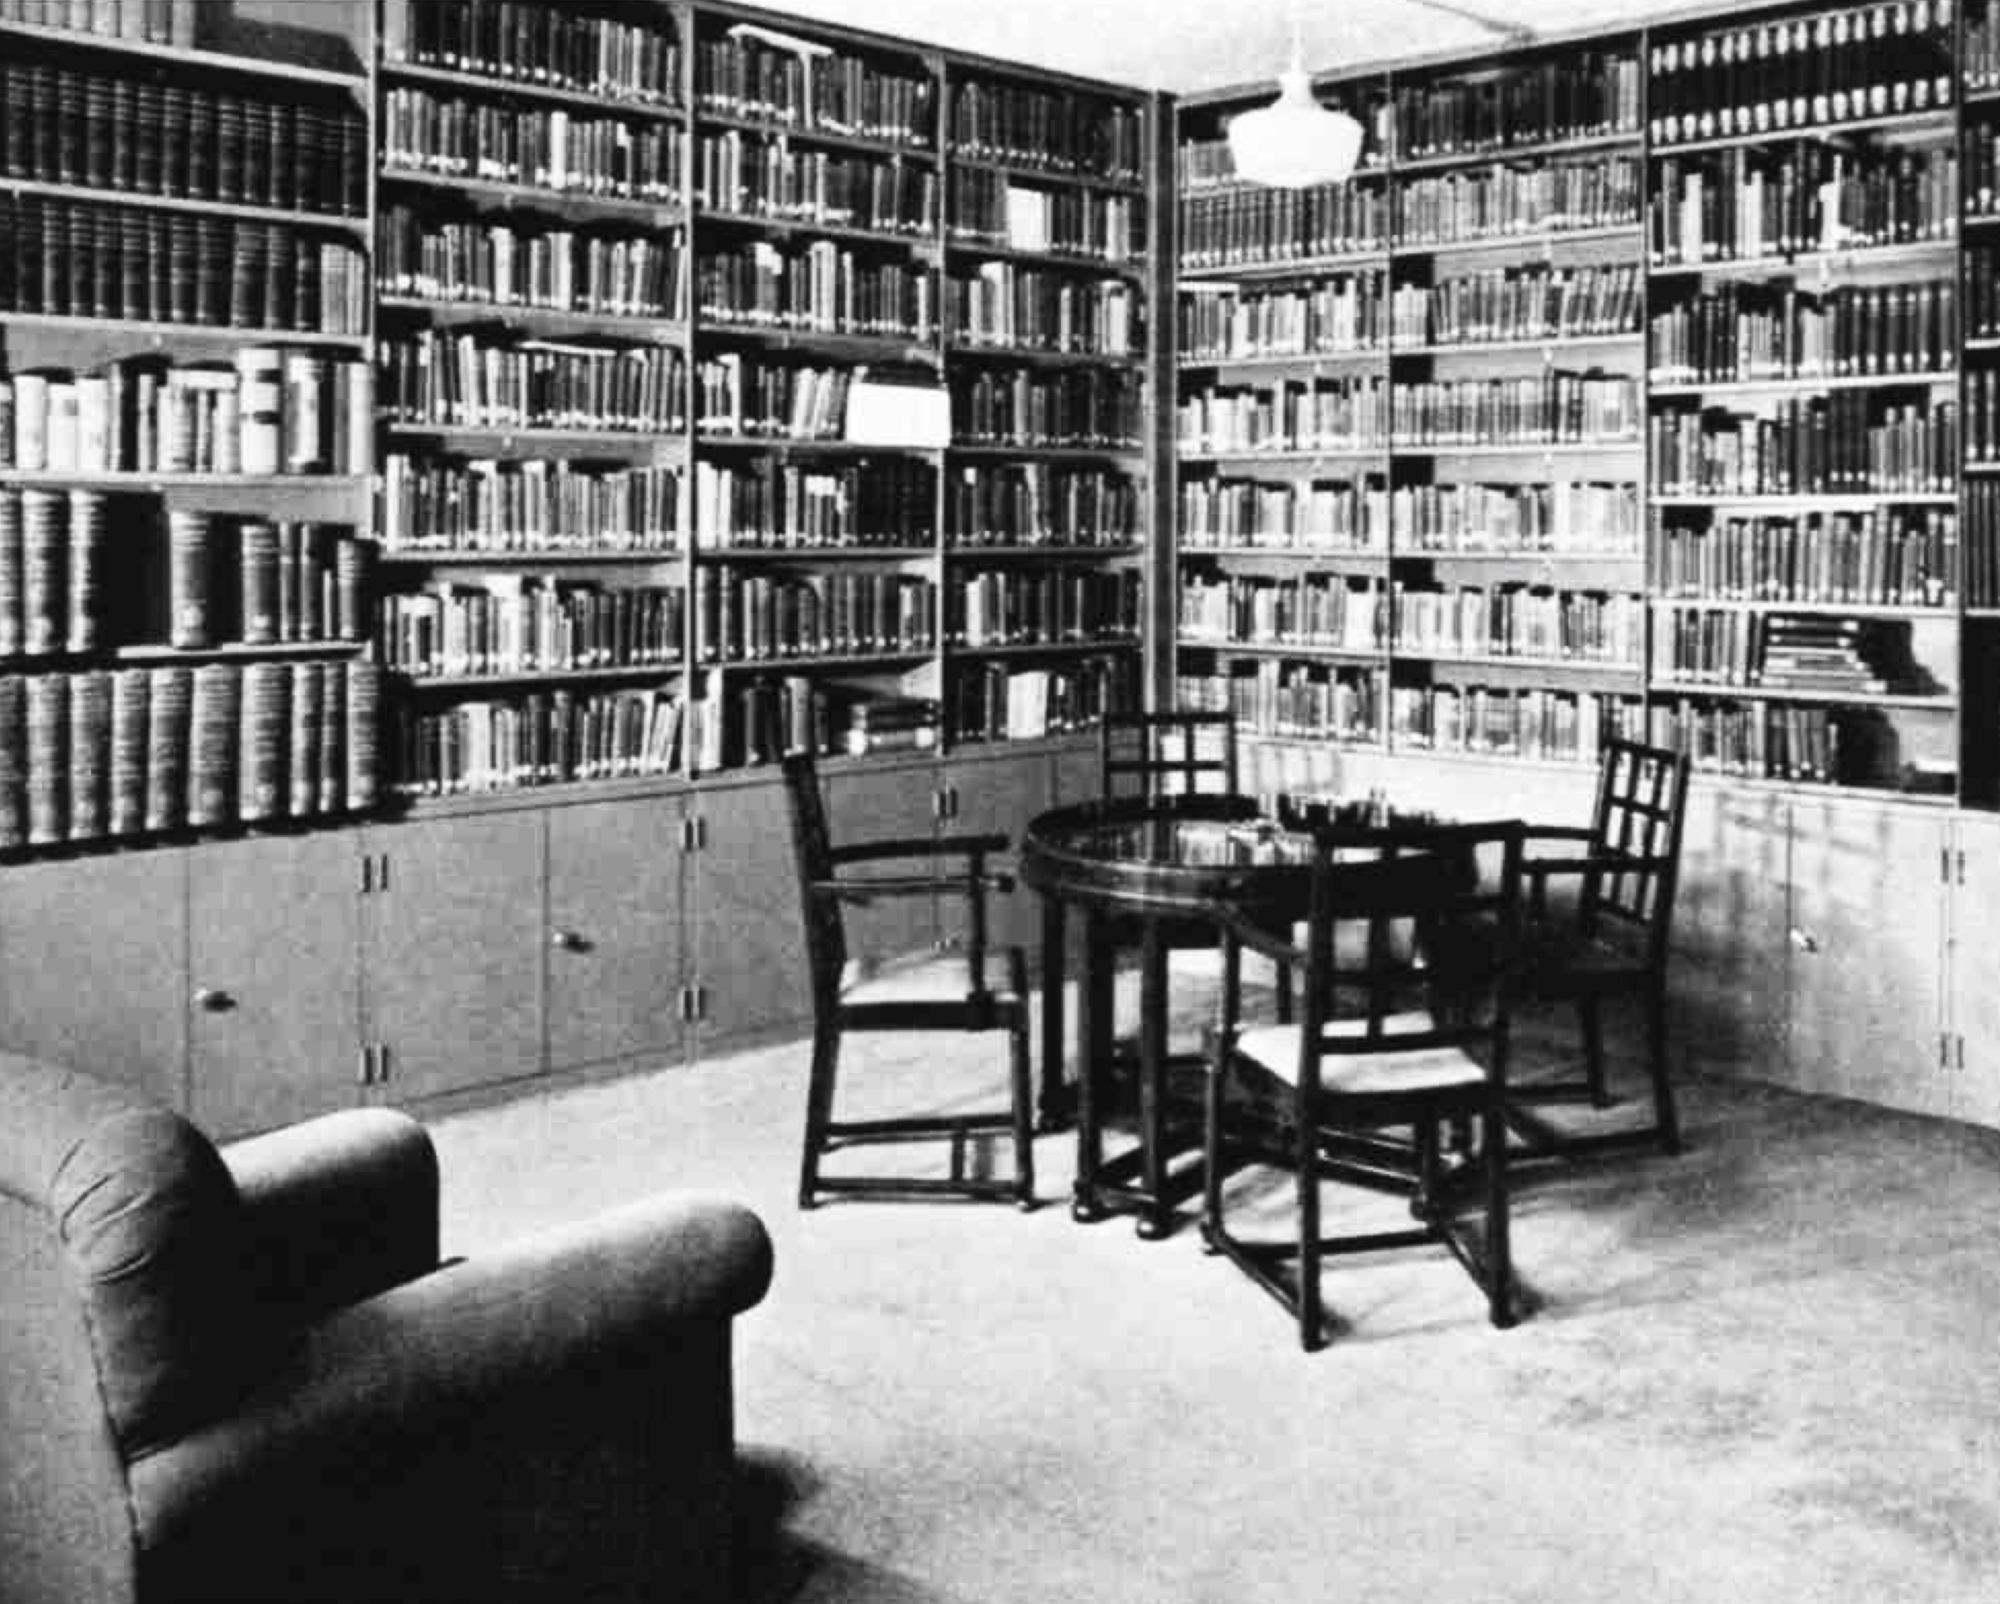 A room filled with books